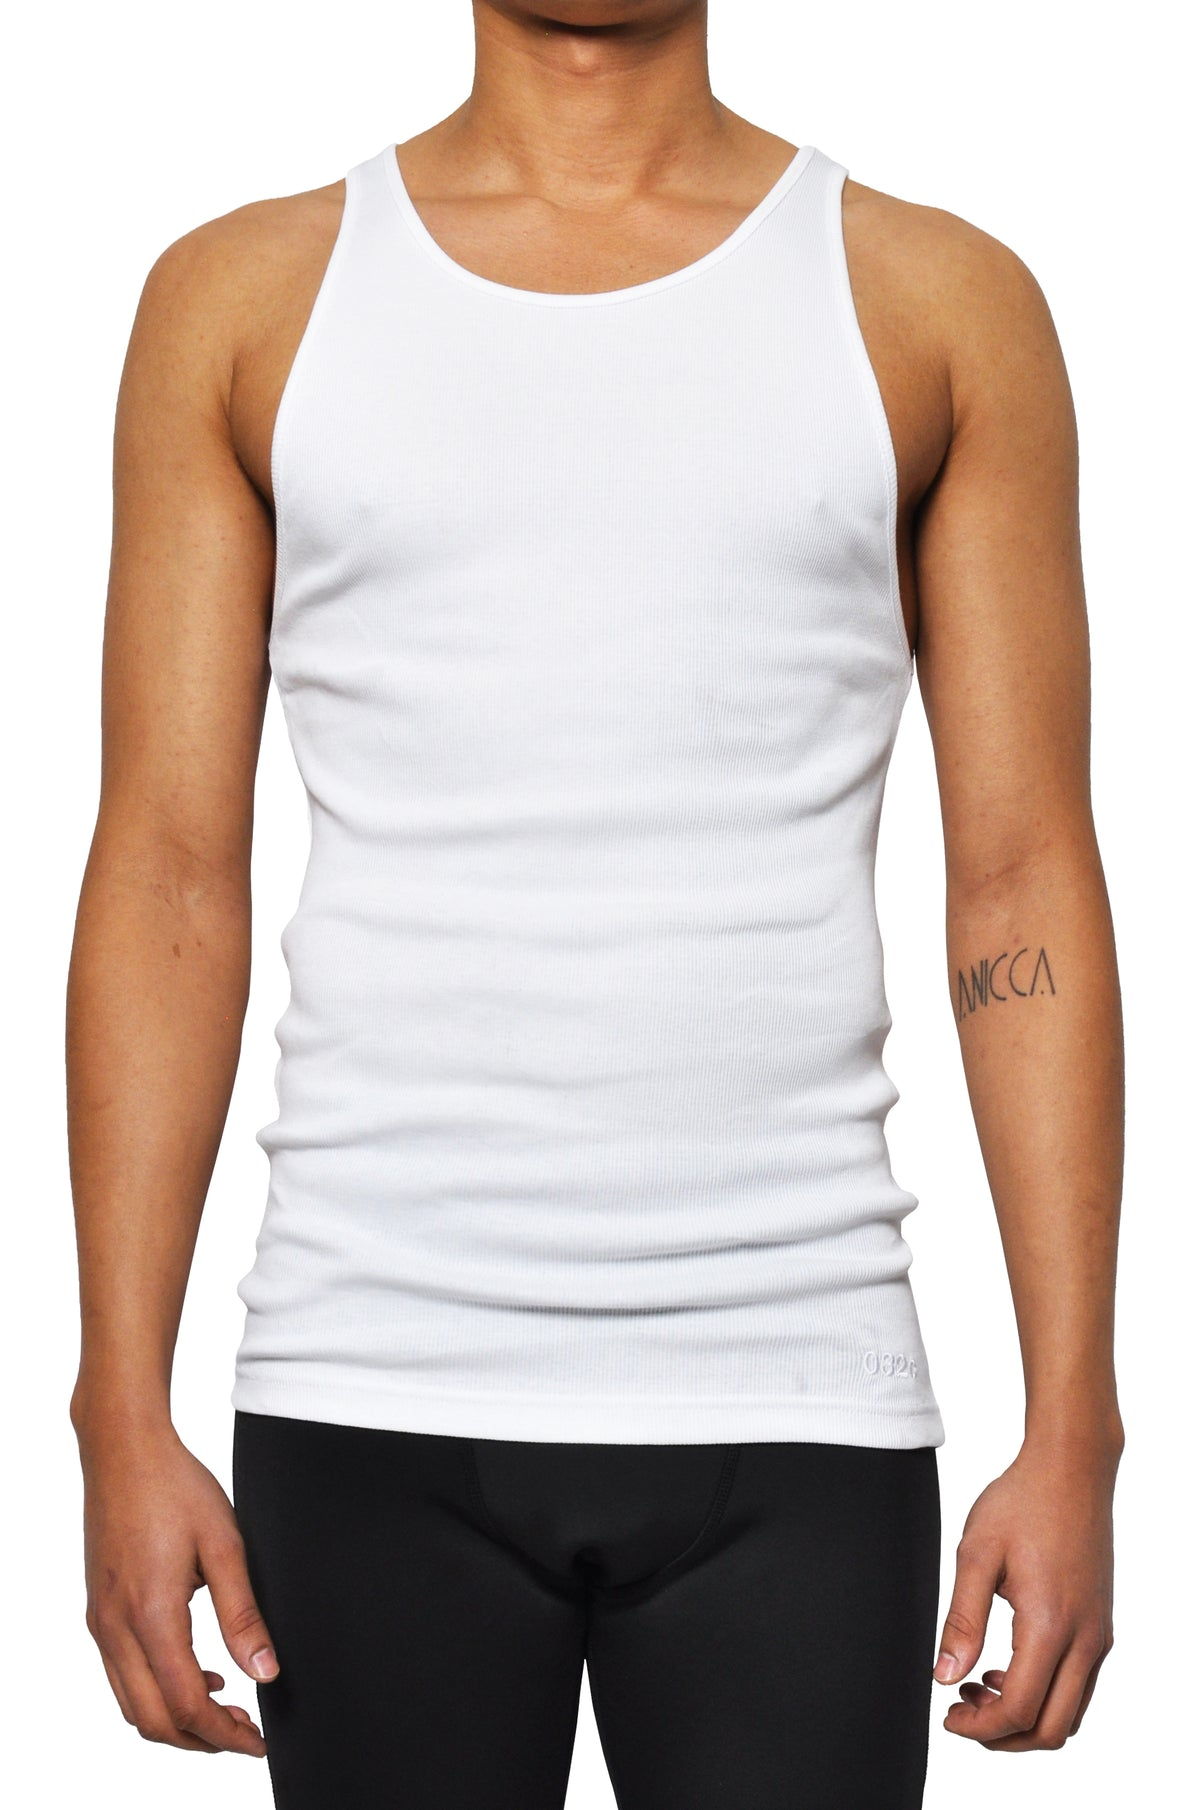 032c LoveSexDreams Ribbed Tank White - 032c